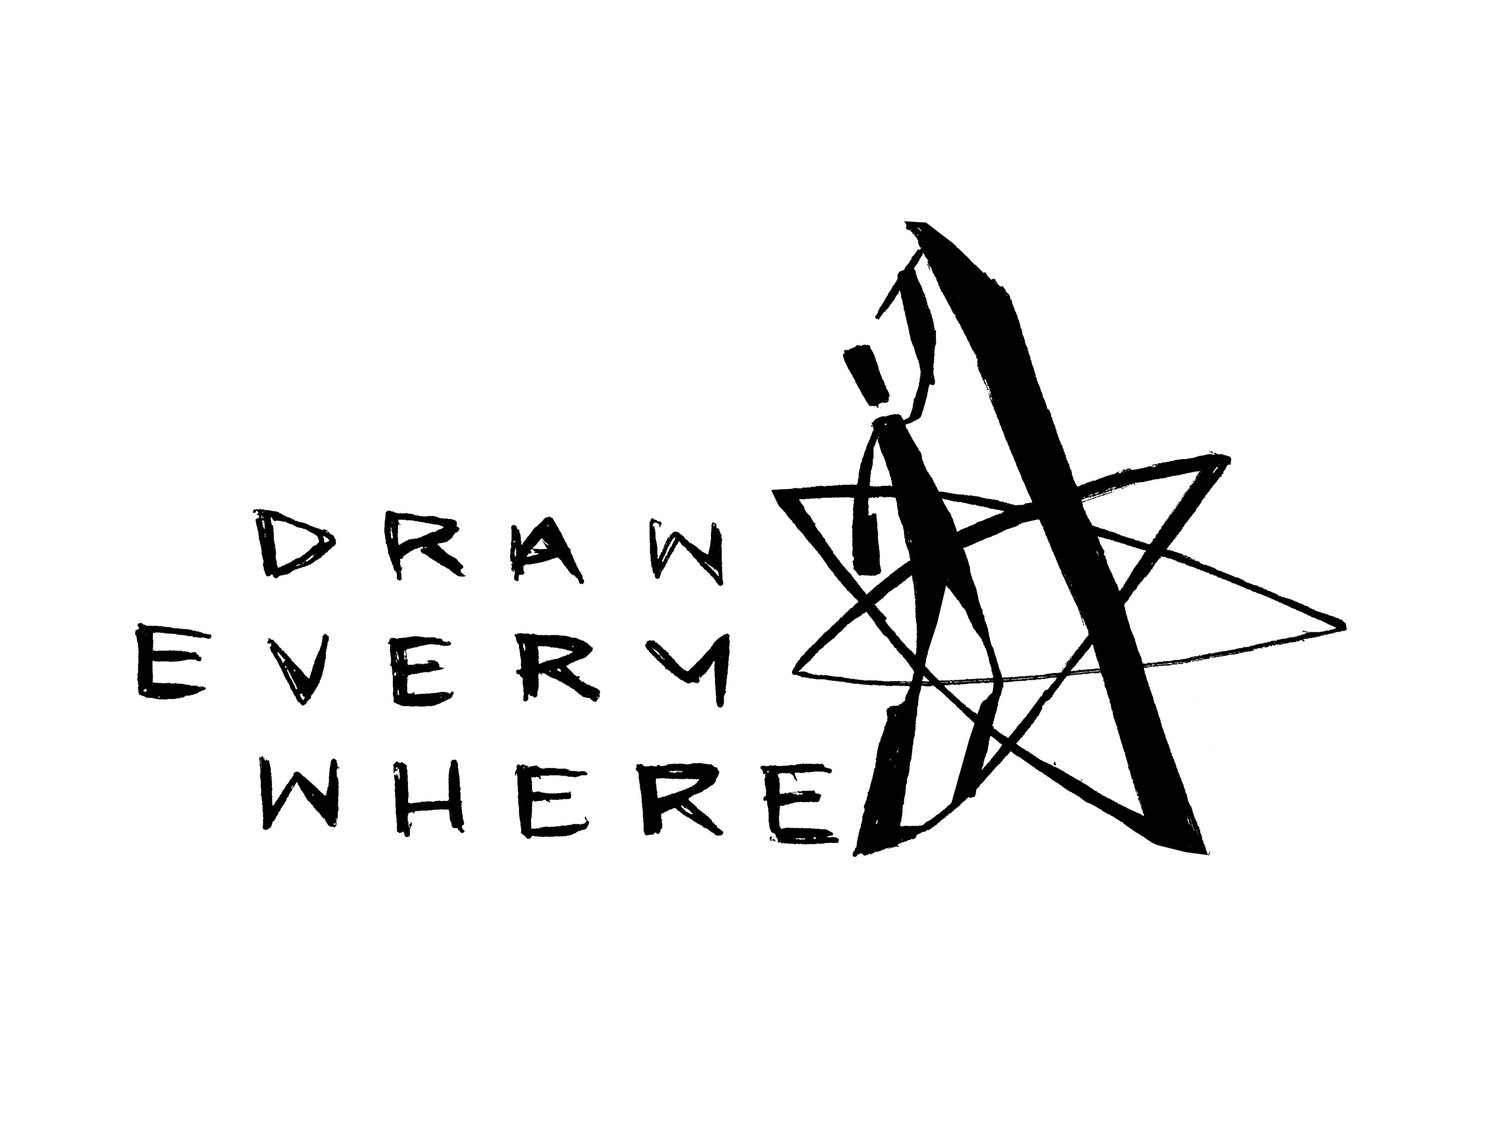 DRAWEVERYWHERE LLC